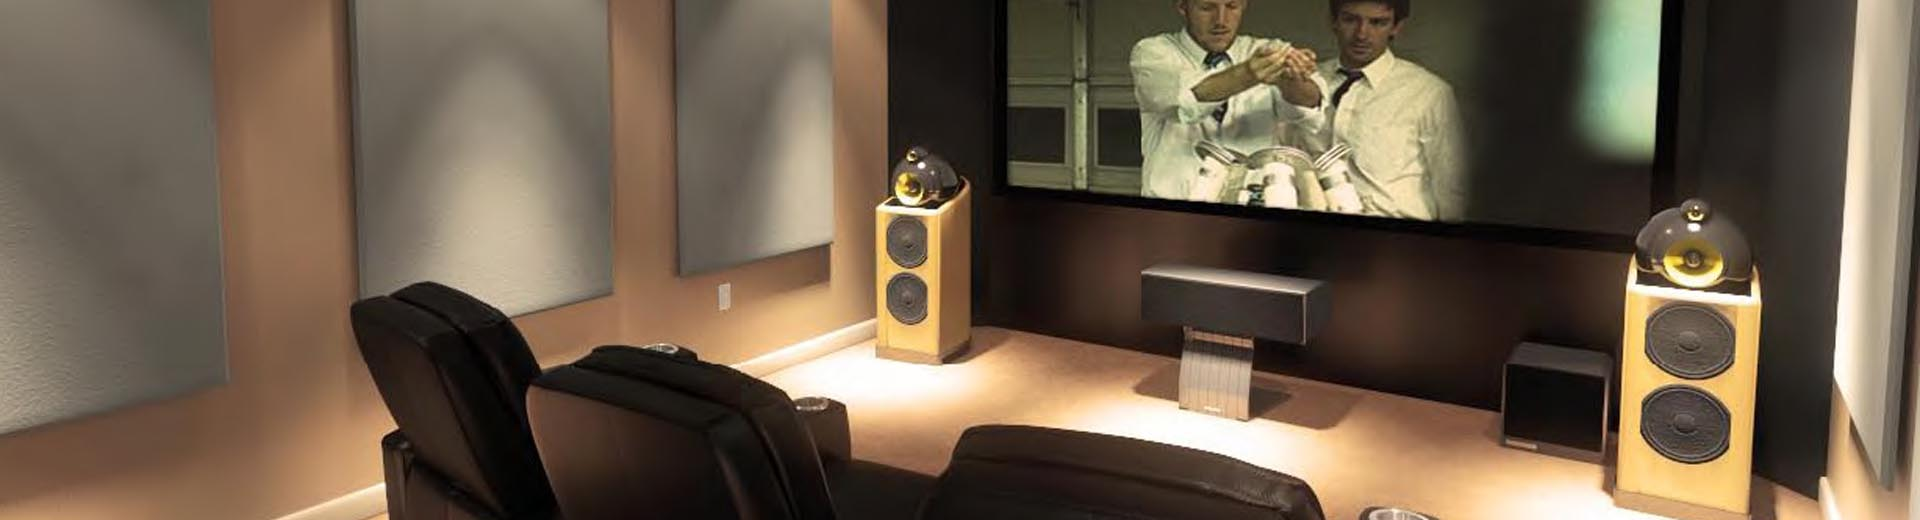 hometheatre-2